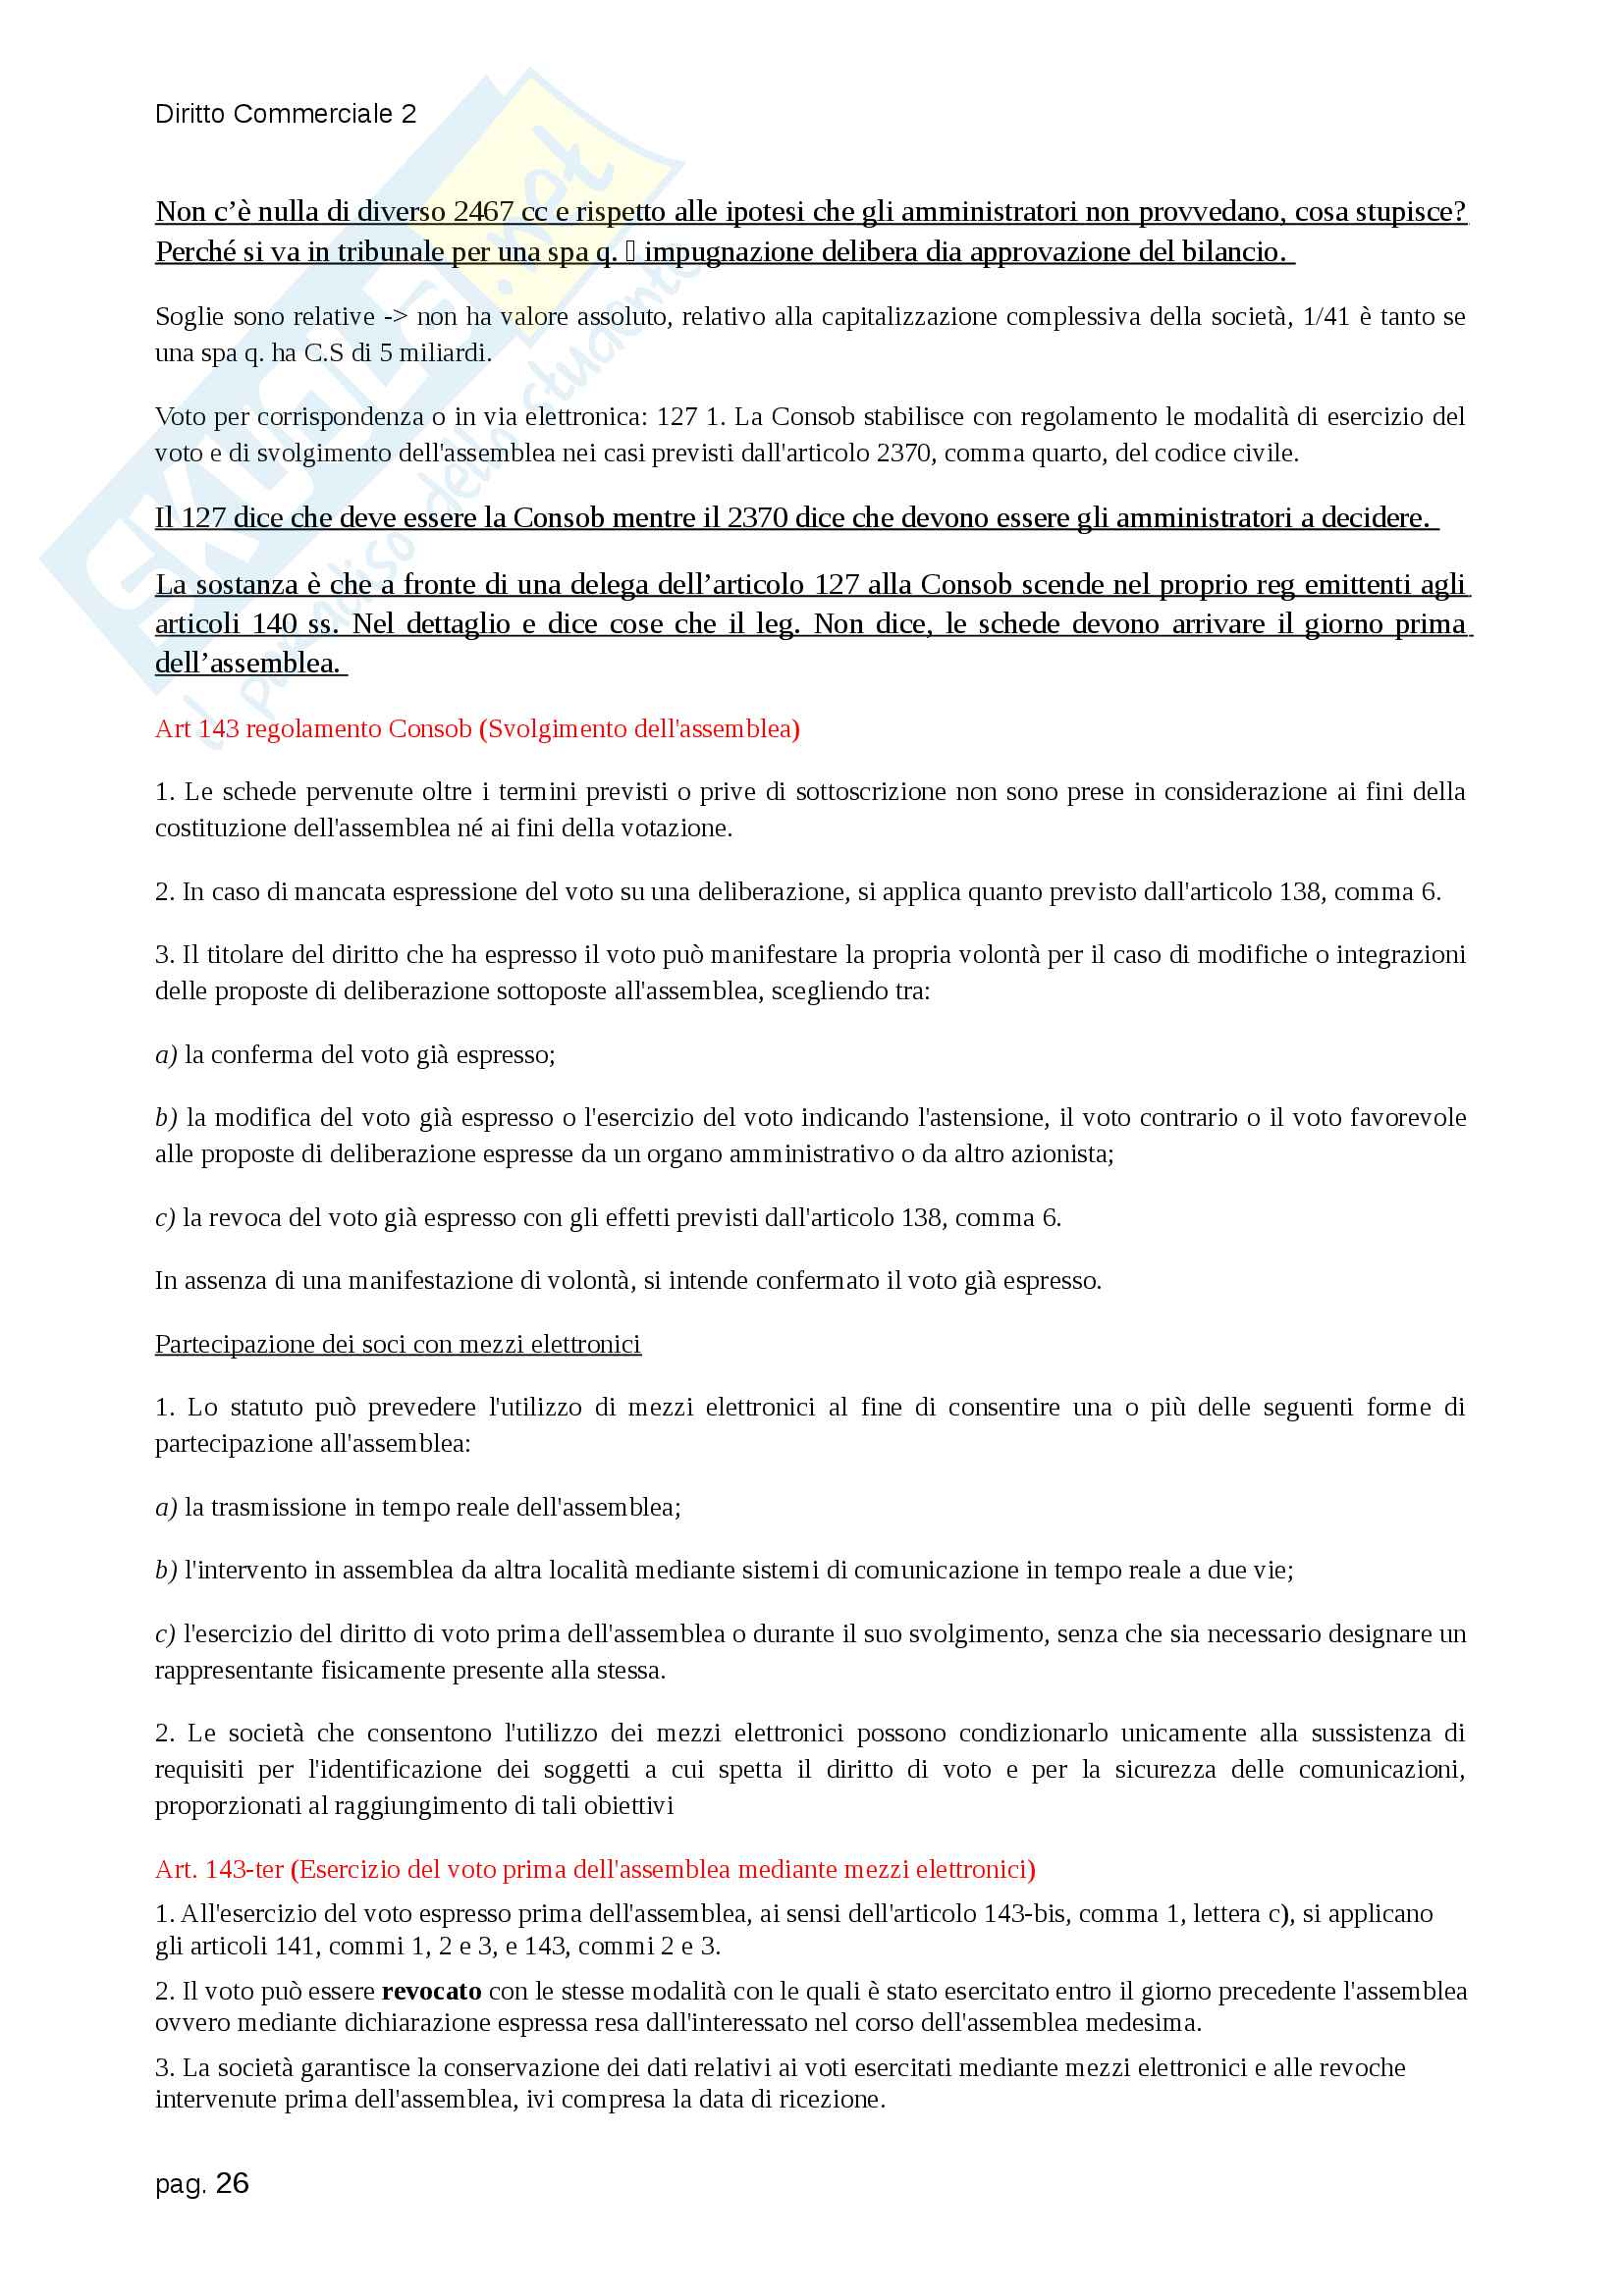 Diritto Commerciale 2 Pag. 26